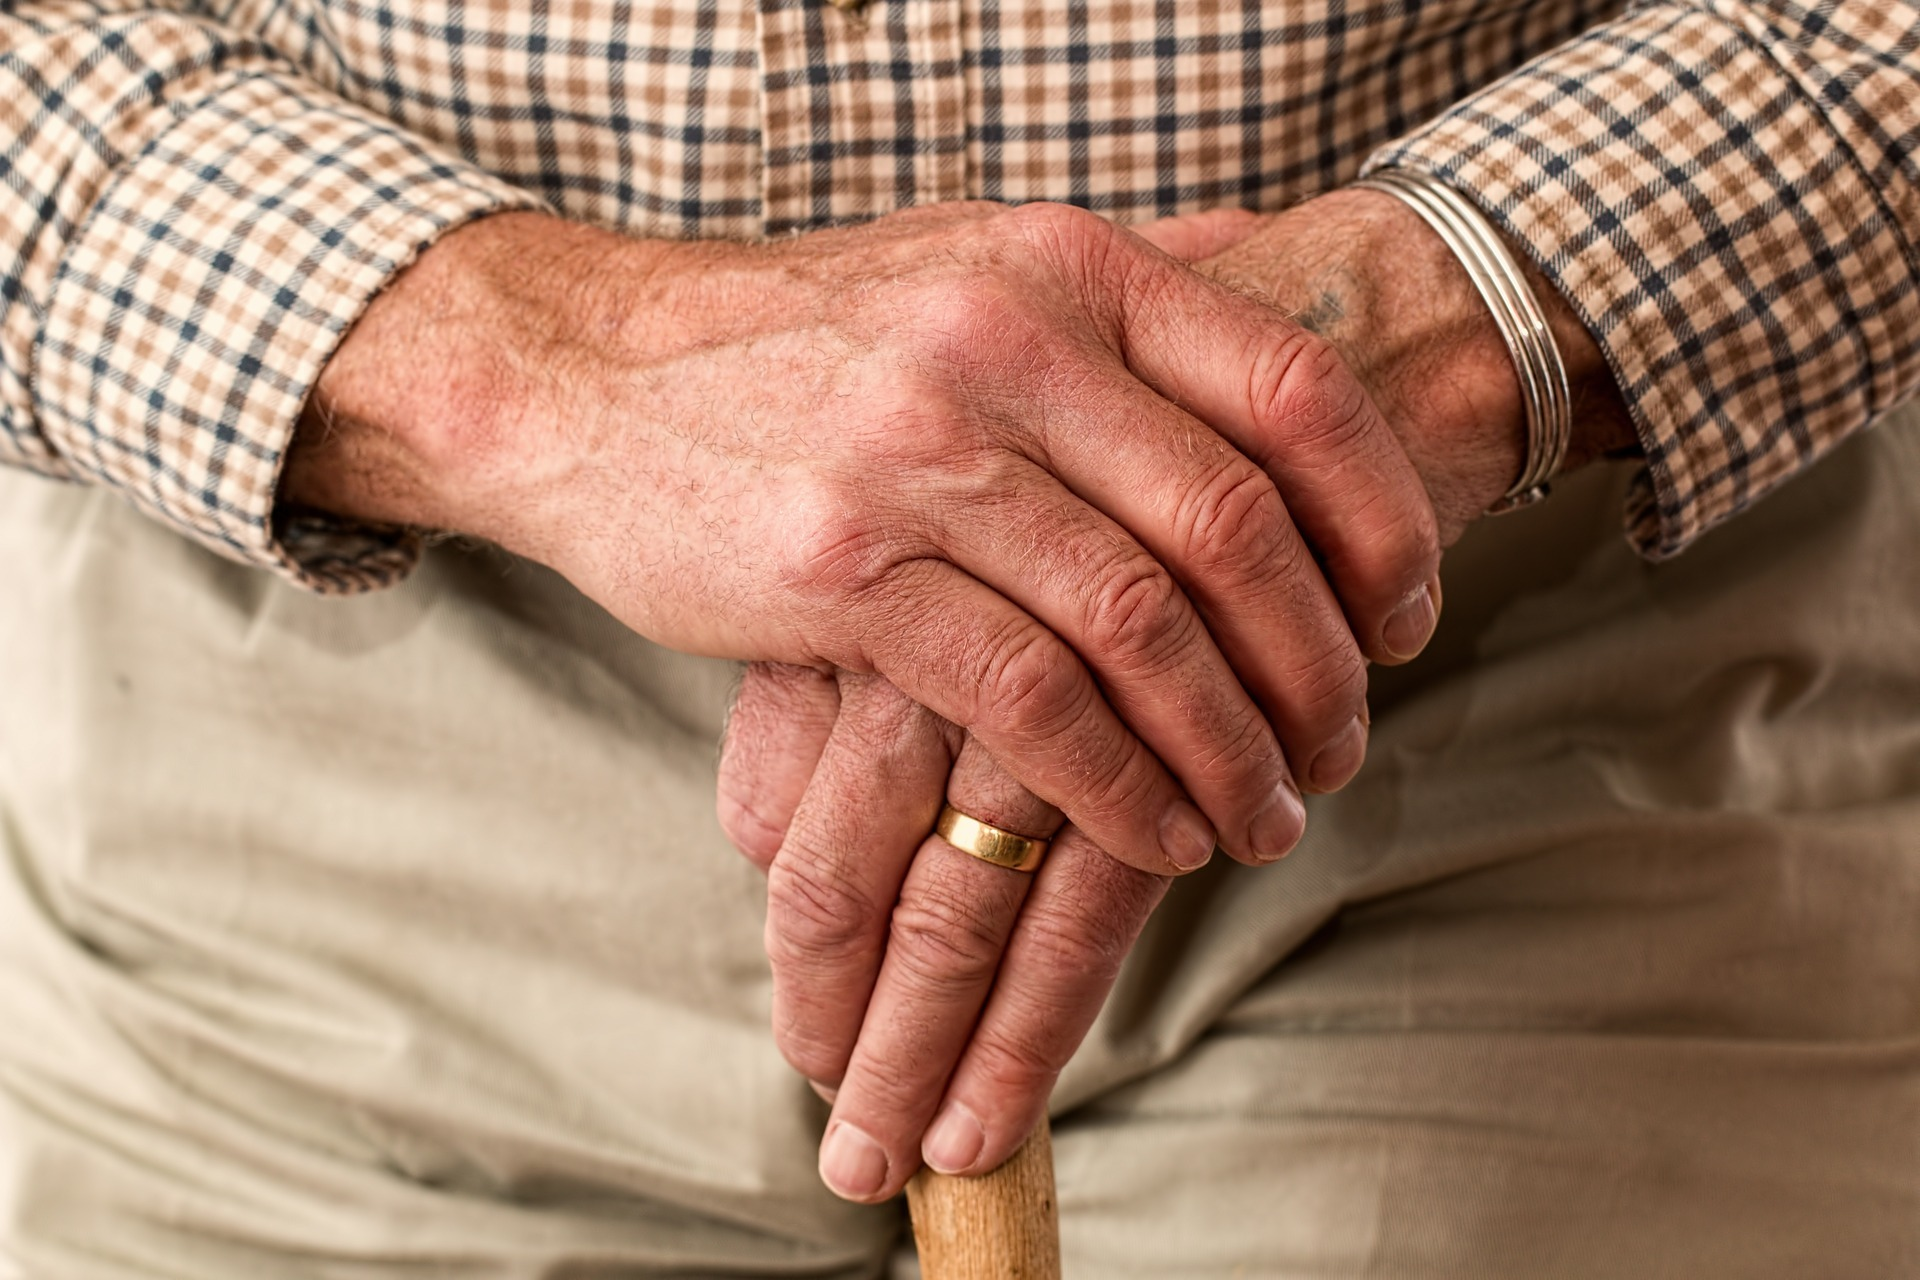 Care homes are battling increasing demand